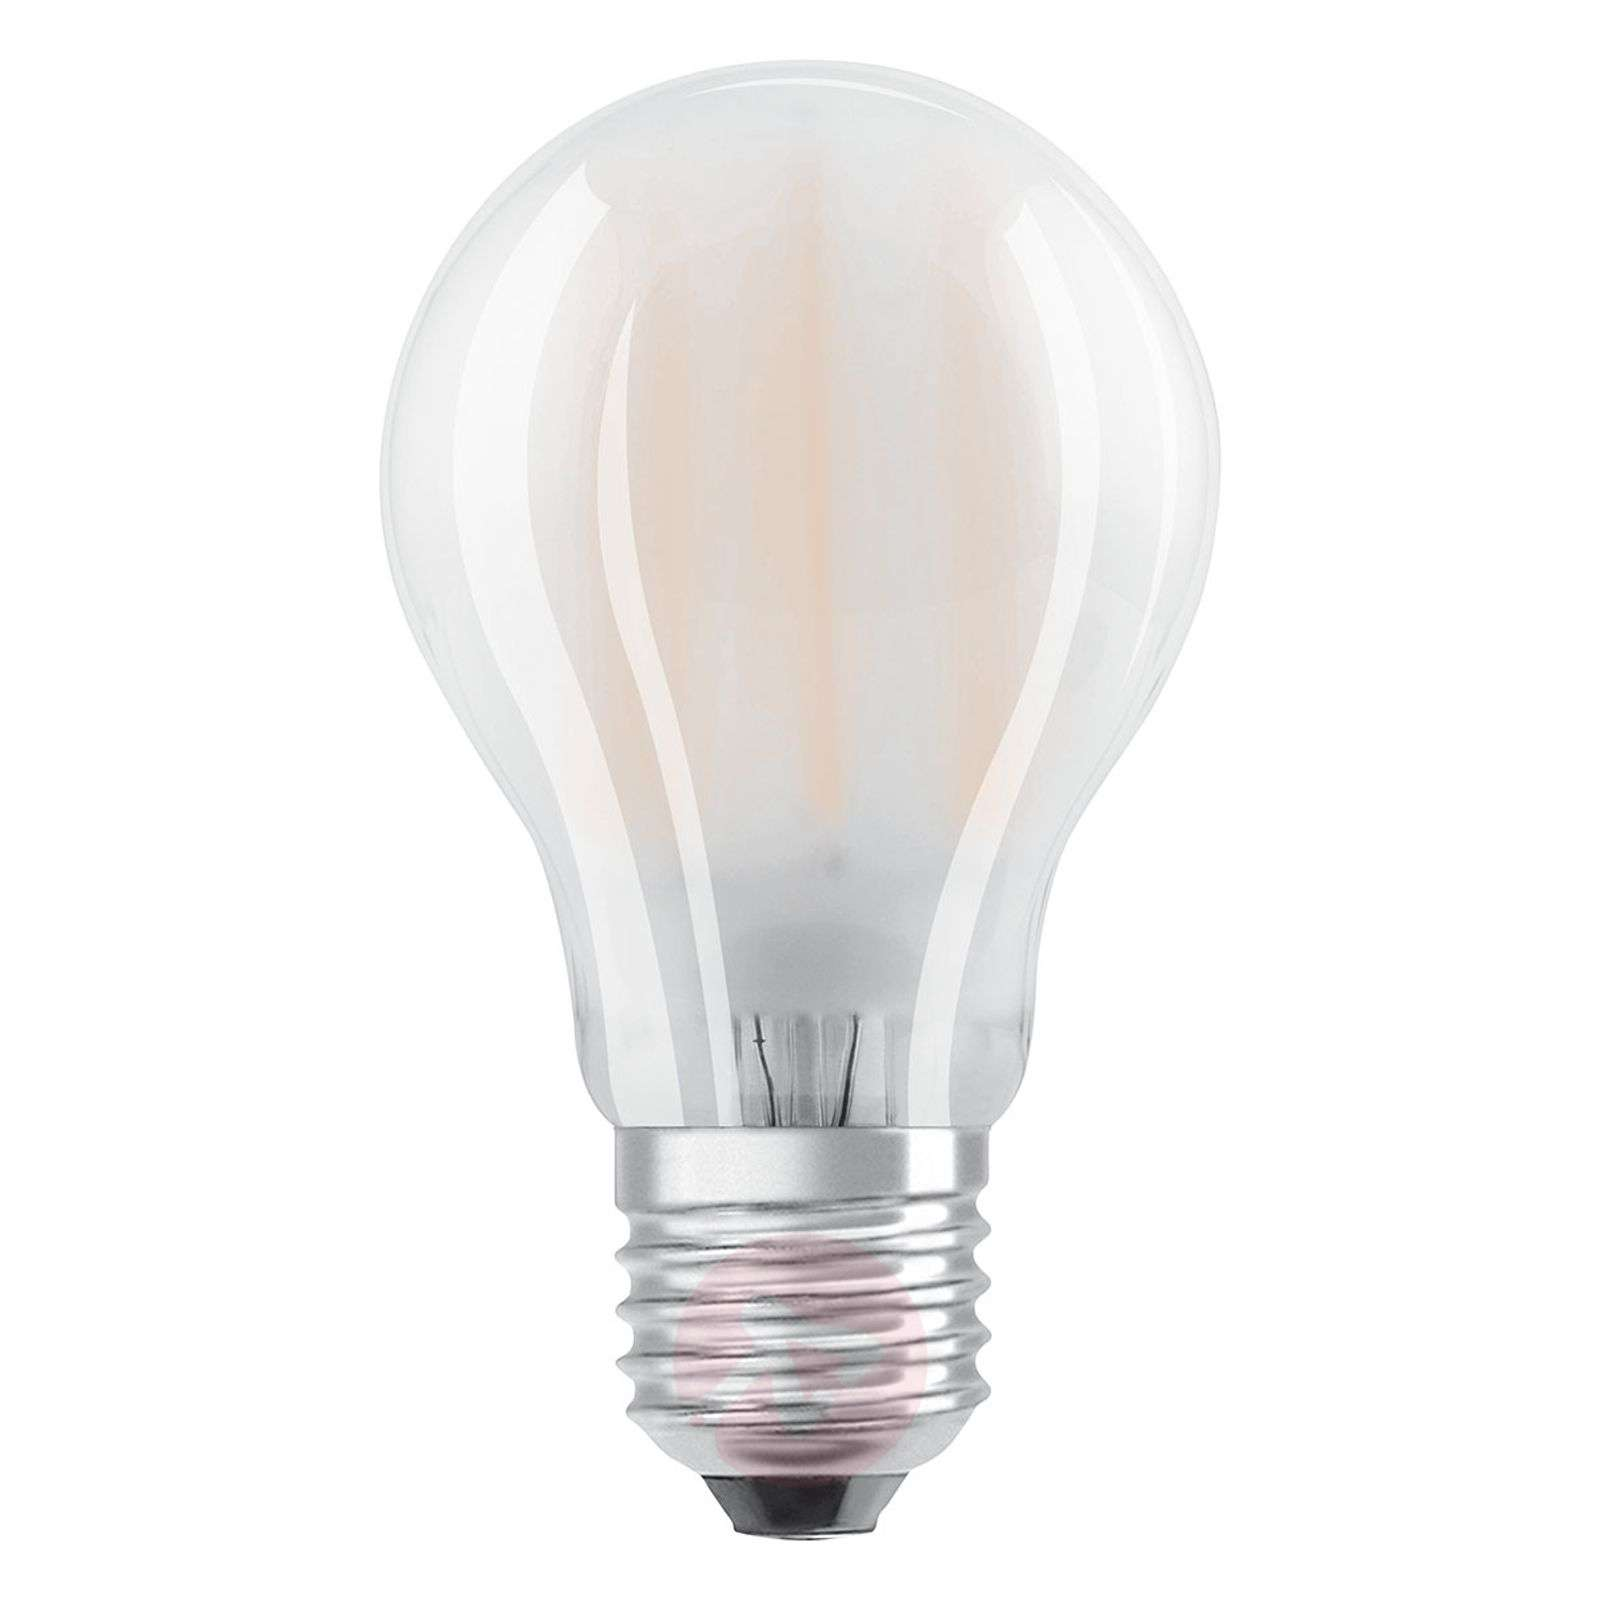 Ampoule LED E27 7W 827, kit de 2, mat-7260969-01